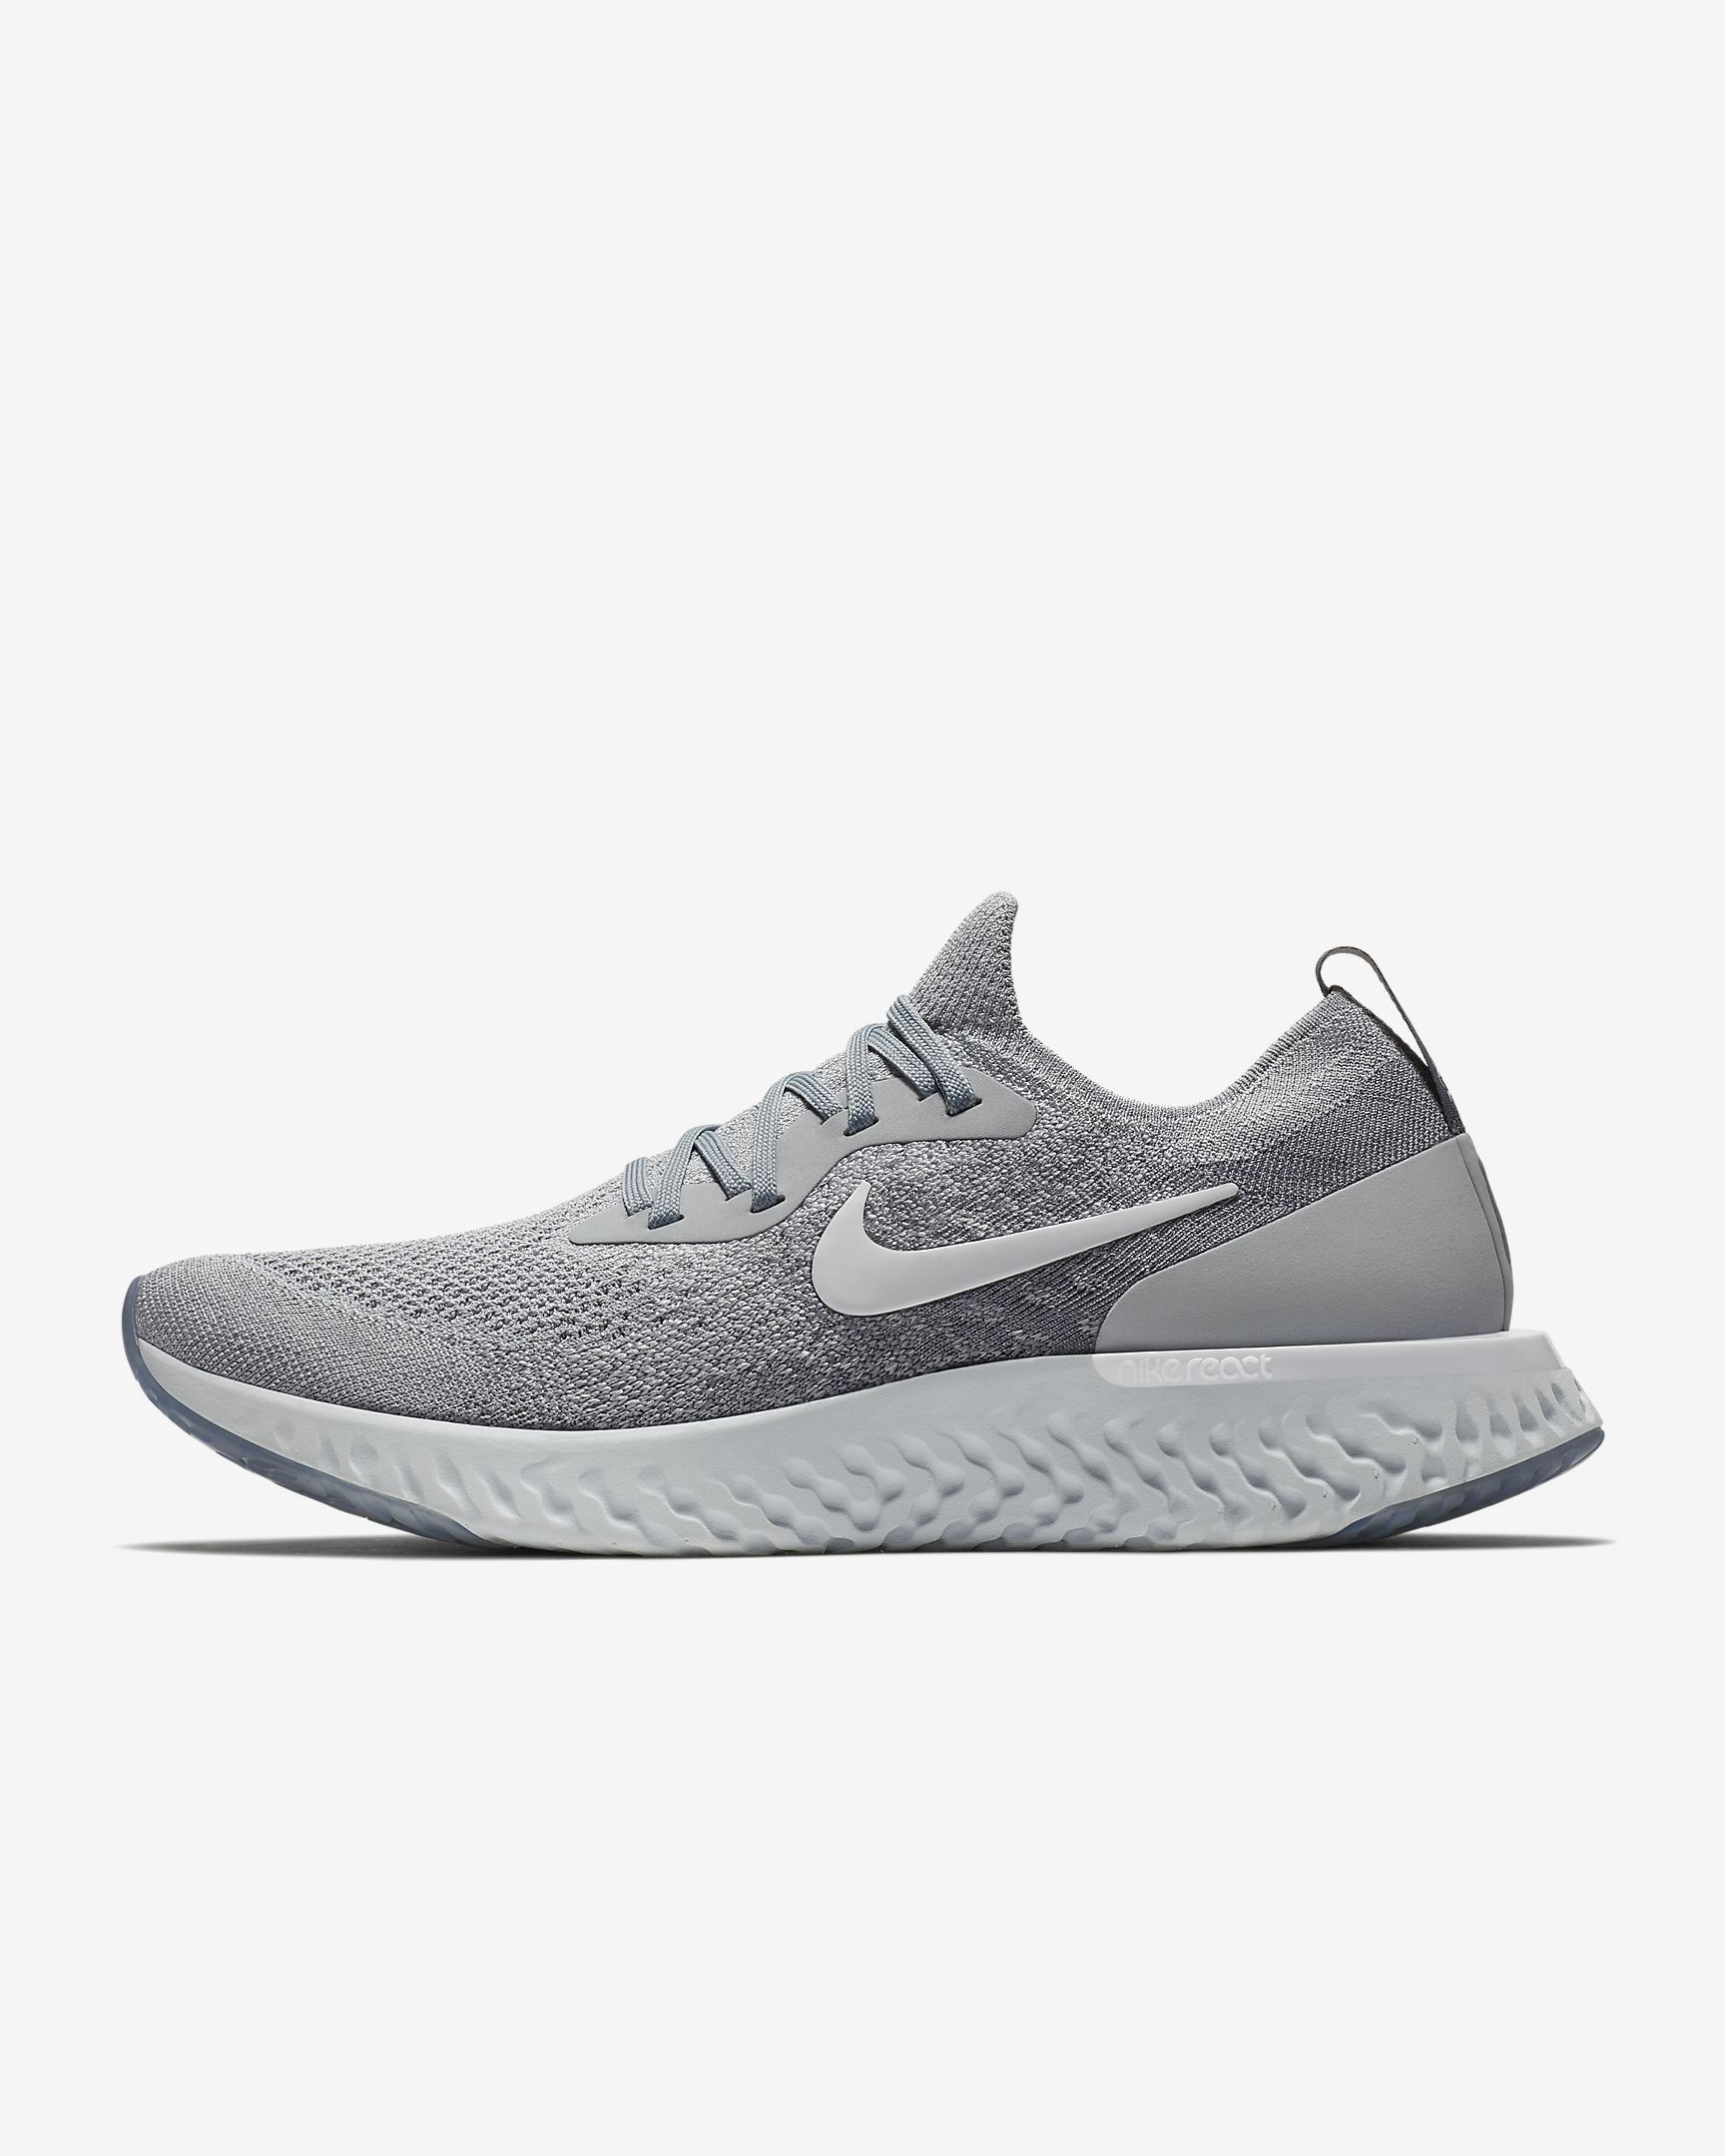 timeless design 99972 fdb55 Cheapest And Latest Authentic Unisex Couple Nike Epic React Flyknit Mens  Running Shoe Wolf Grey Cool Grey Pure Platinum White AQ0067-002